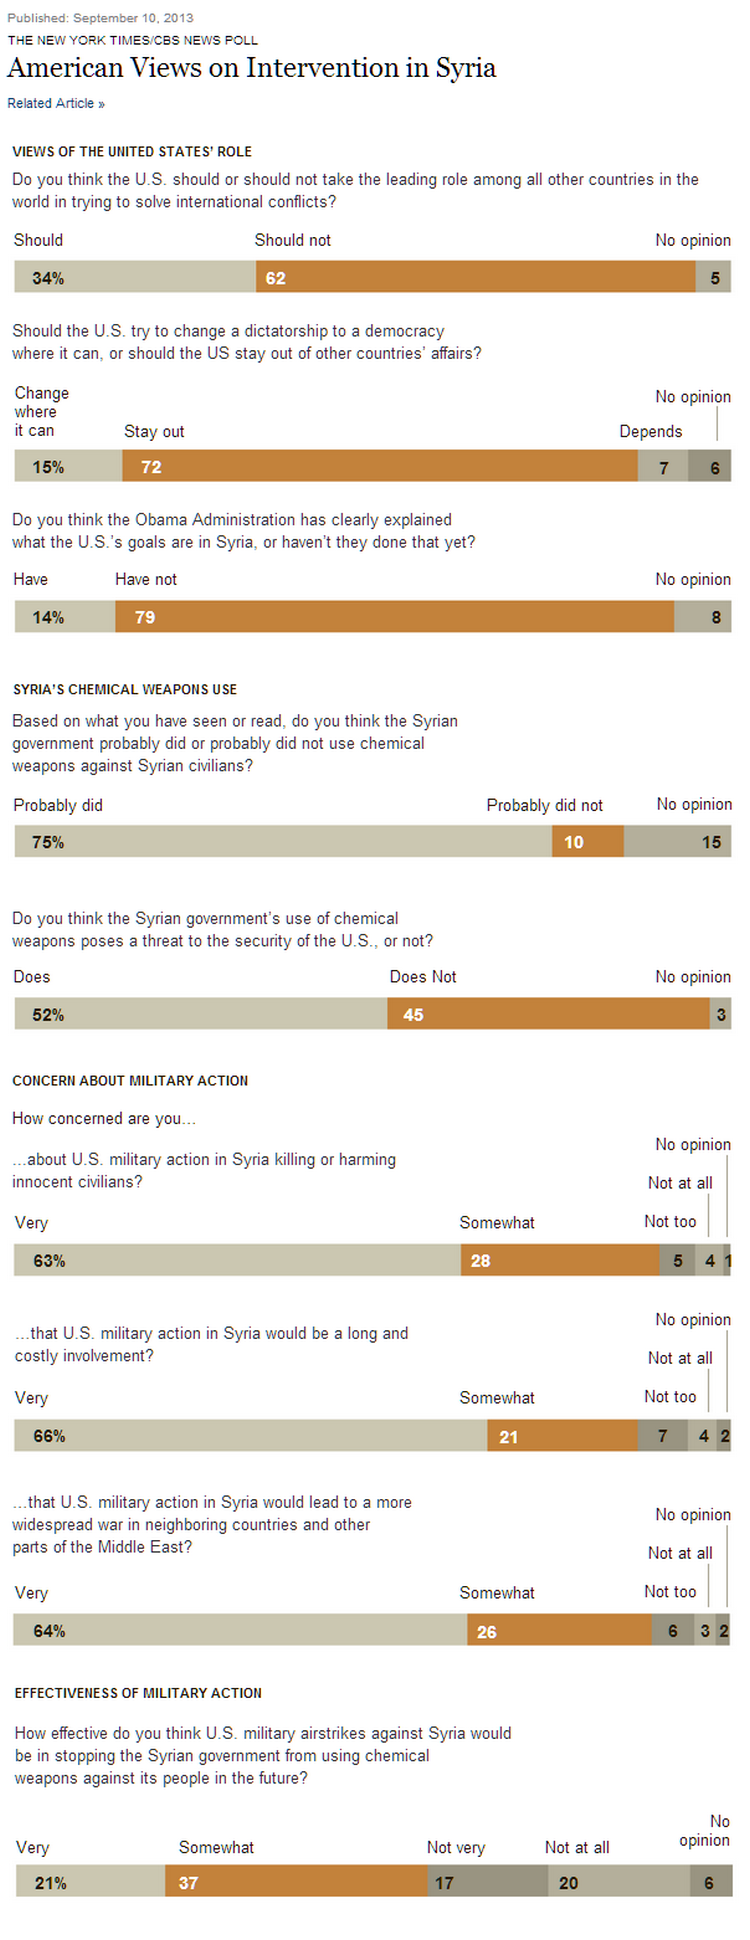 American Views on Intervention in Syria   Graphic   NYTimes.com